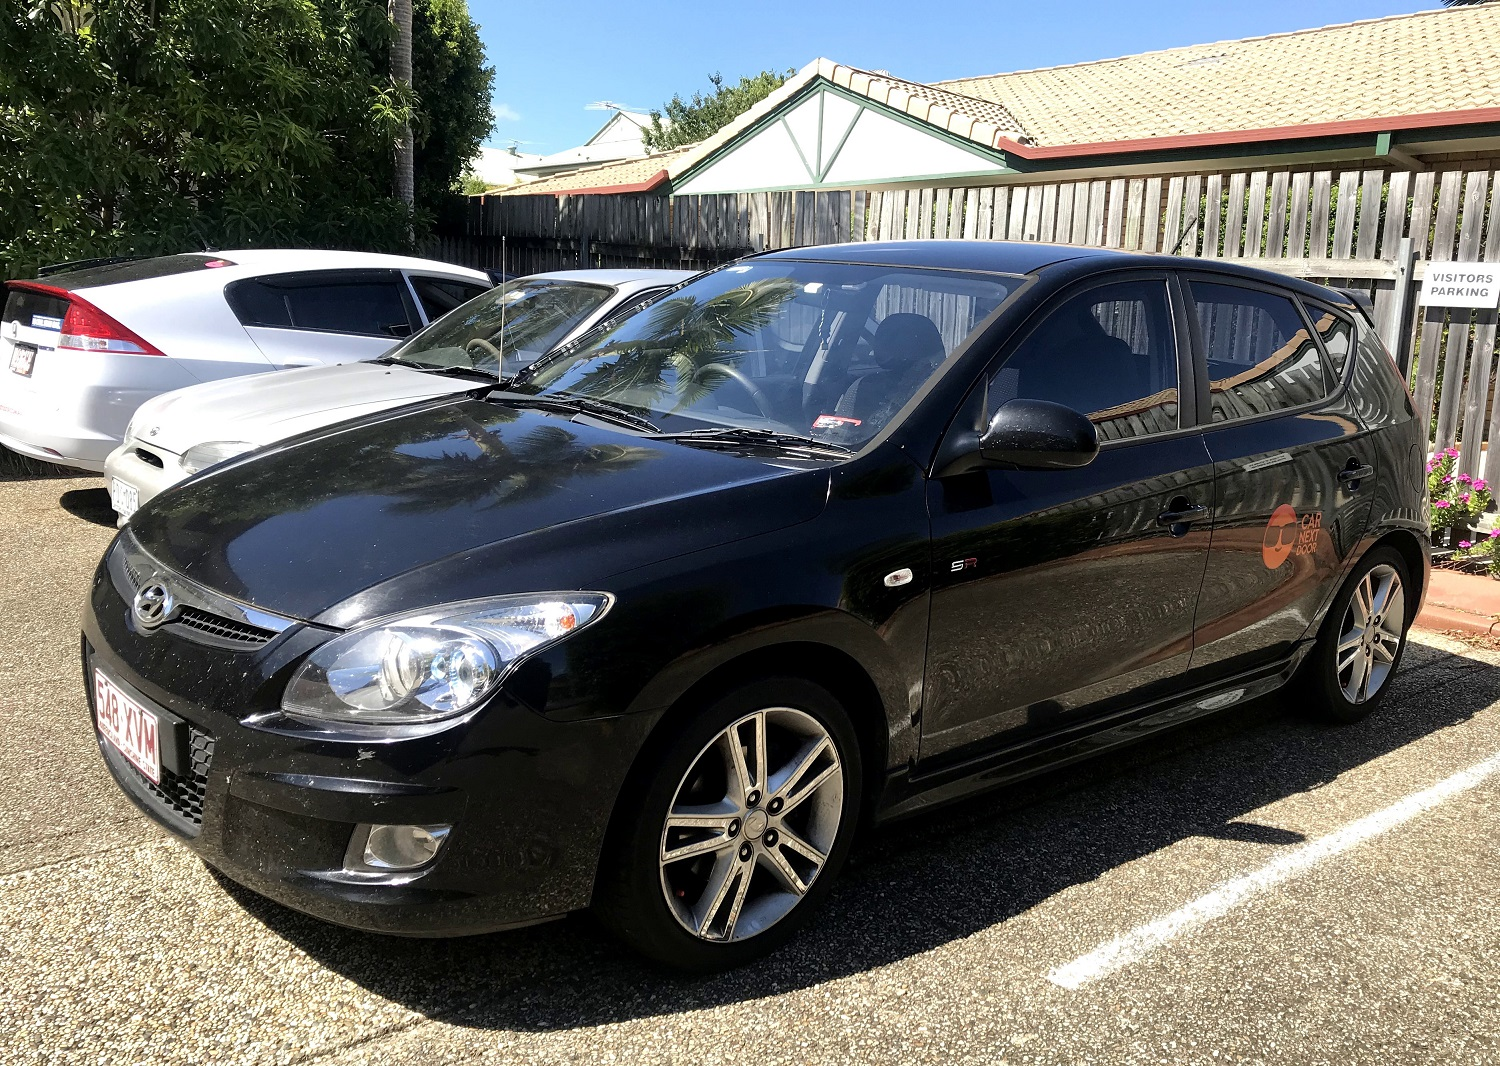 Picture of Brian's 2010 Hyundai i30